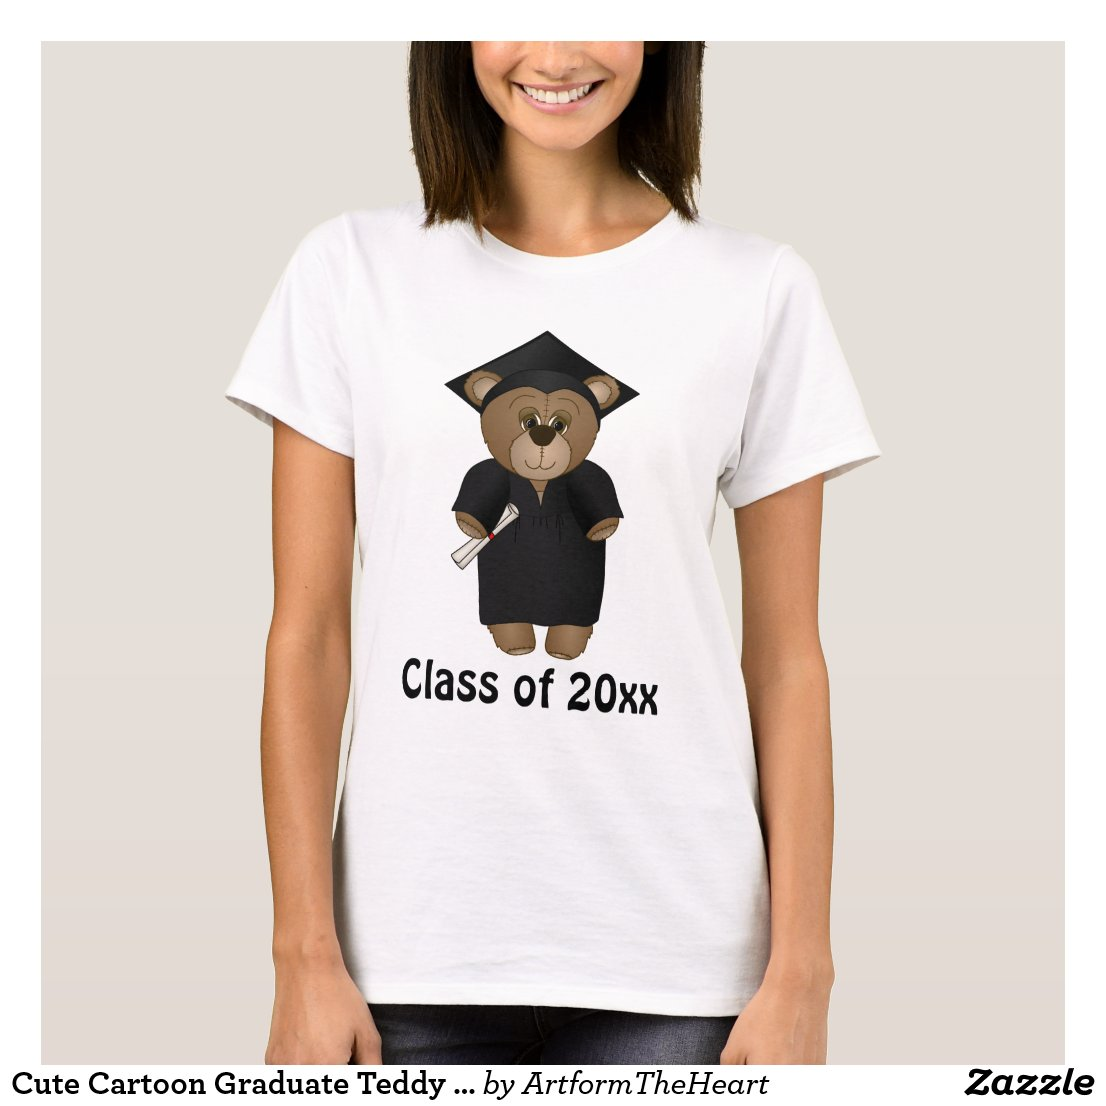 Cute Cartoon Graduate Teddy Bear